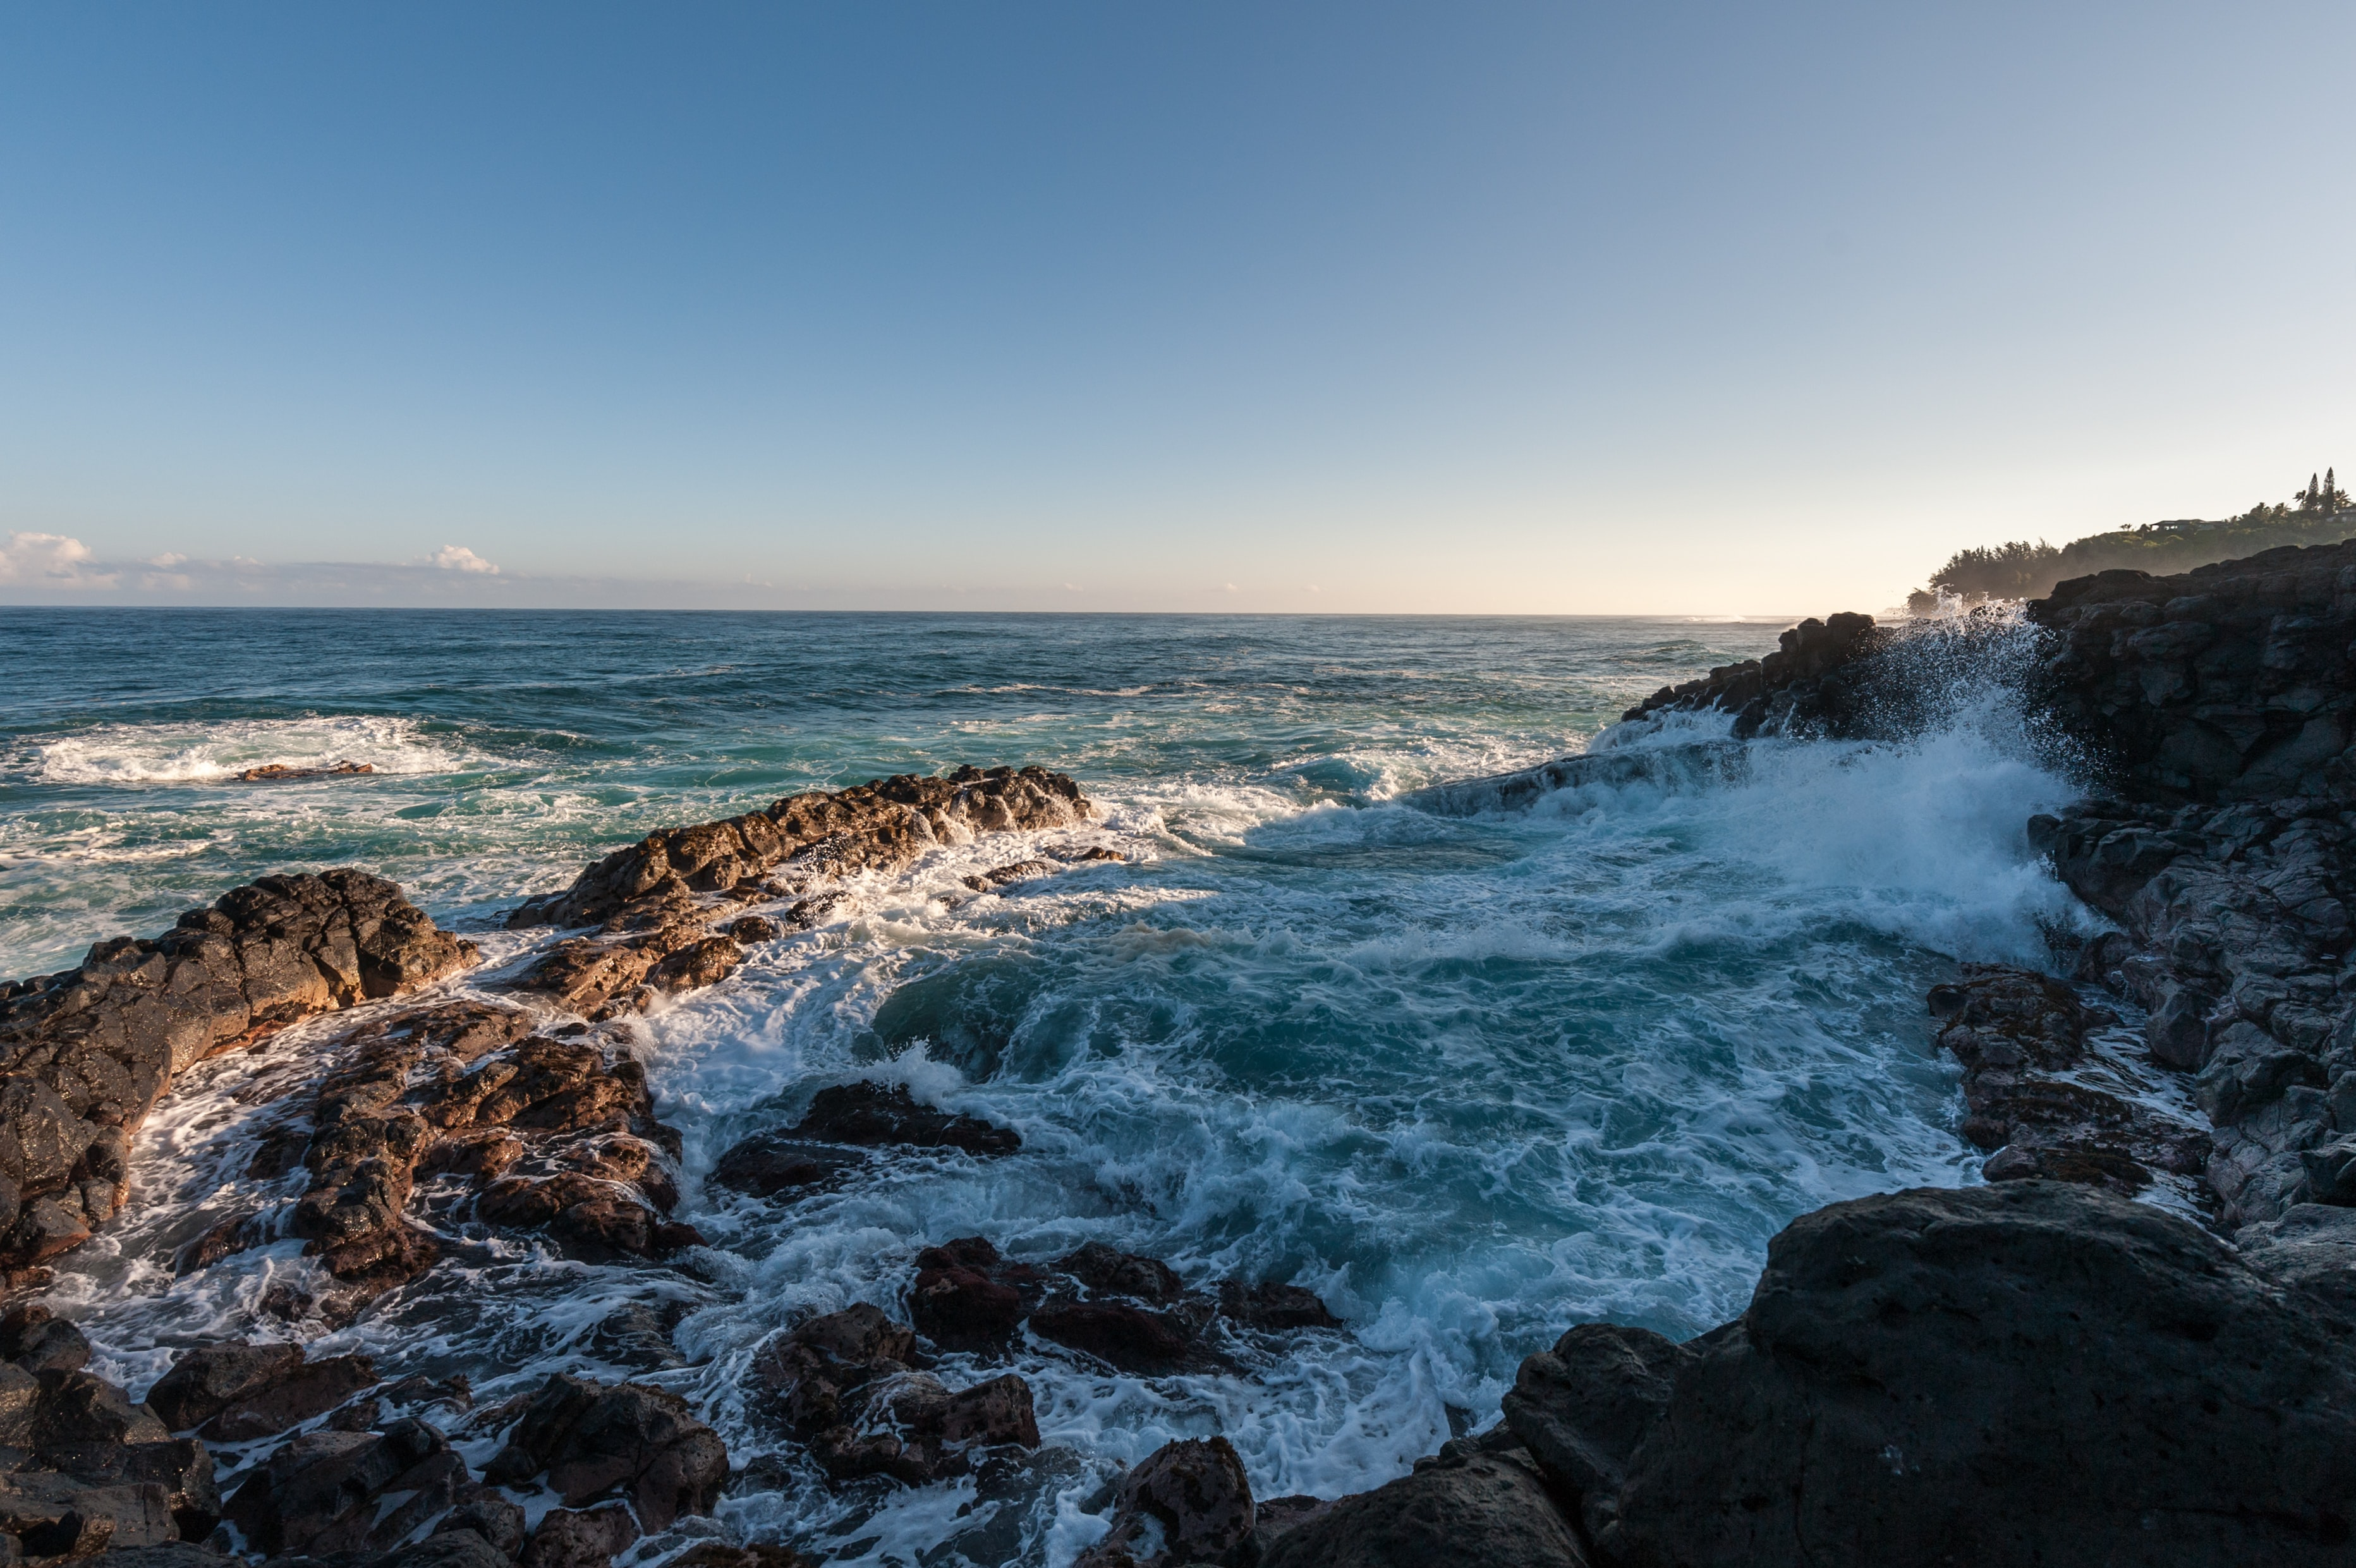 ocean waves hammering rock boulders